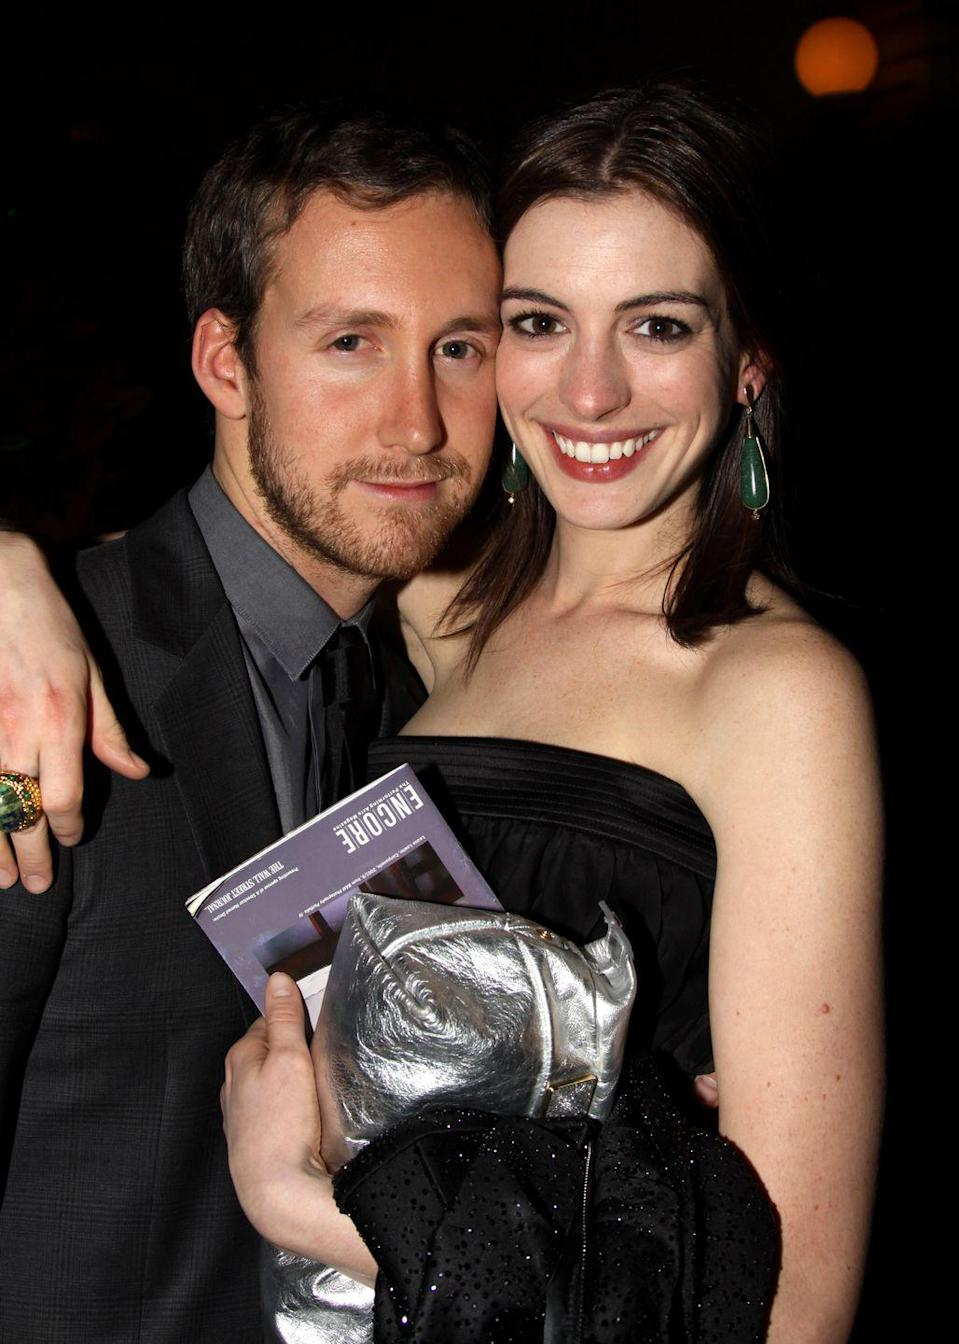 "<p>The couple were <a href=""https://www.bustle.com/articles/126326-how-did-anne-hathaway-and-adam-shulman-first-meet-their-story-is-pretty-close-to-love"" rel=""nofollow noopener"" target=""_blank"" data-ylk=""slk:introduced"" class=""link rapid-noclick-resp"">introduced</a> by a mutual friend at the Palm Springs Film Festival in 2008.</p>"